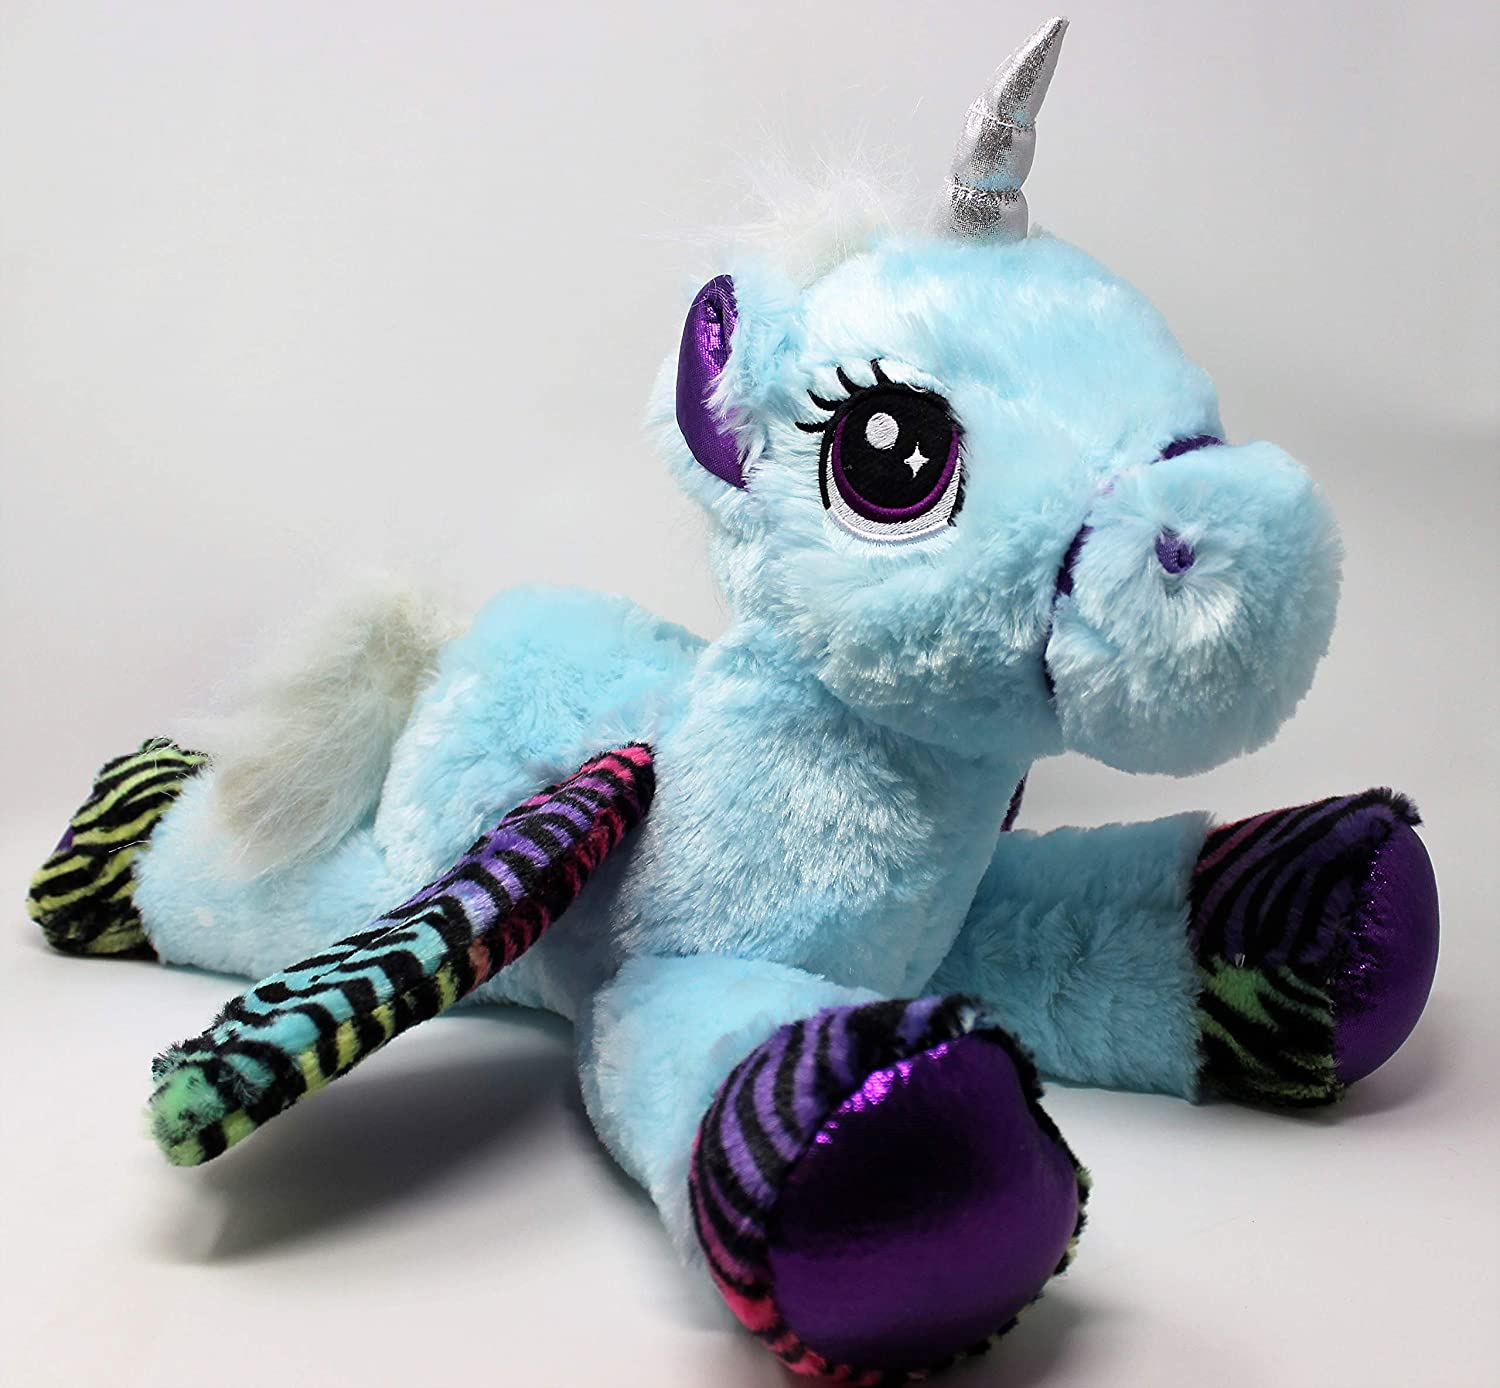 Adorable 18  Extra Soft Large Laying Unicorn, Pale bluee with Contrasting White Mane & Tail, Silver Horn, Multi Coloured Wings and Feet, Embroidered Eyes.